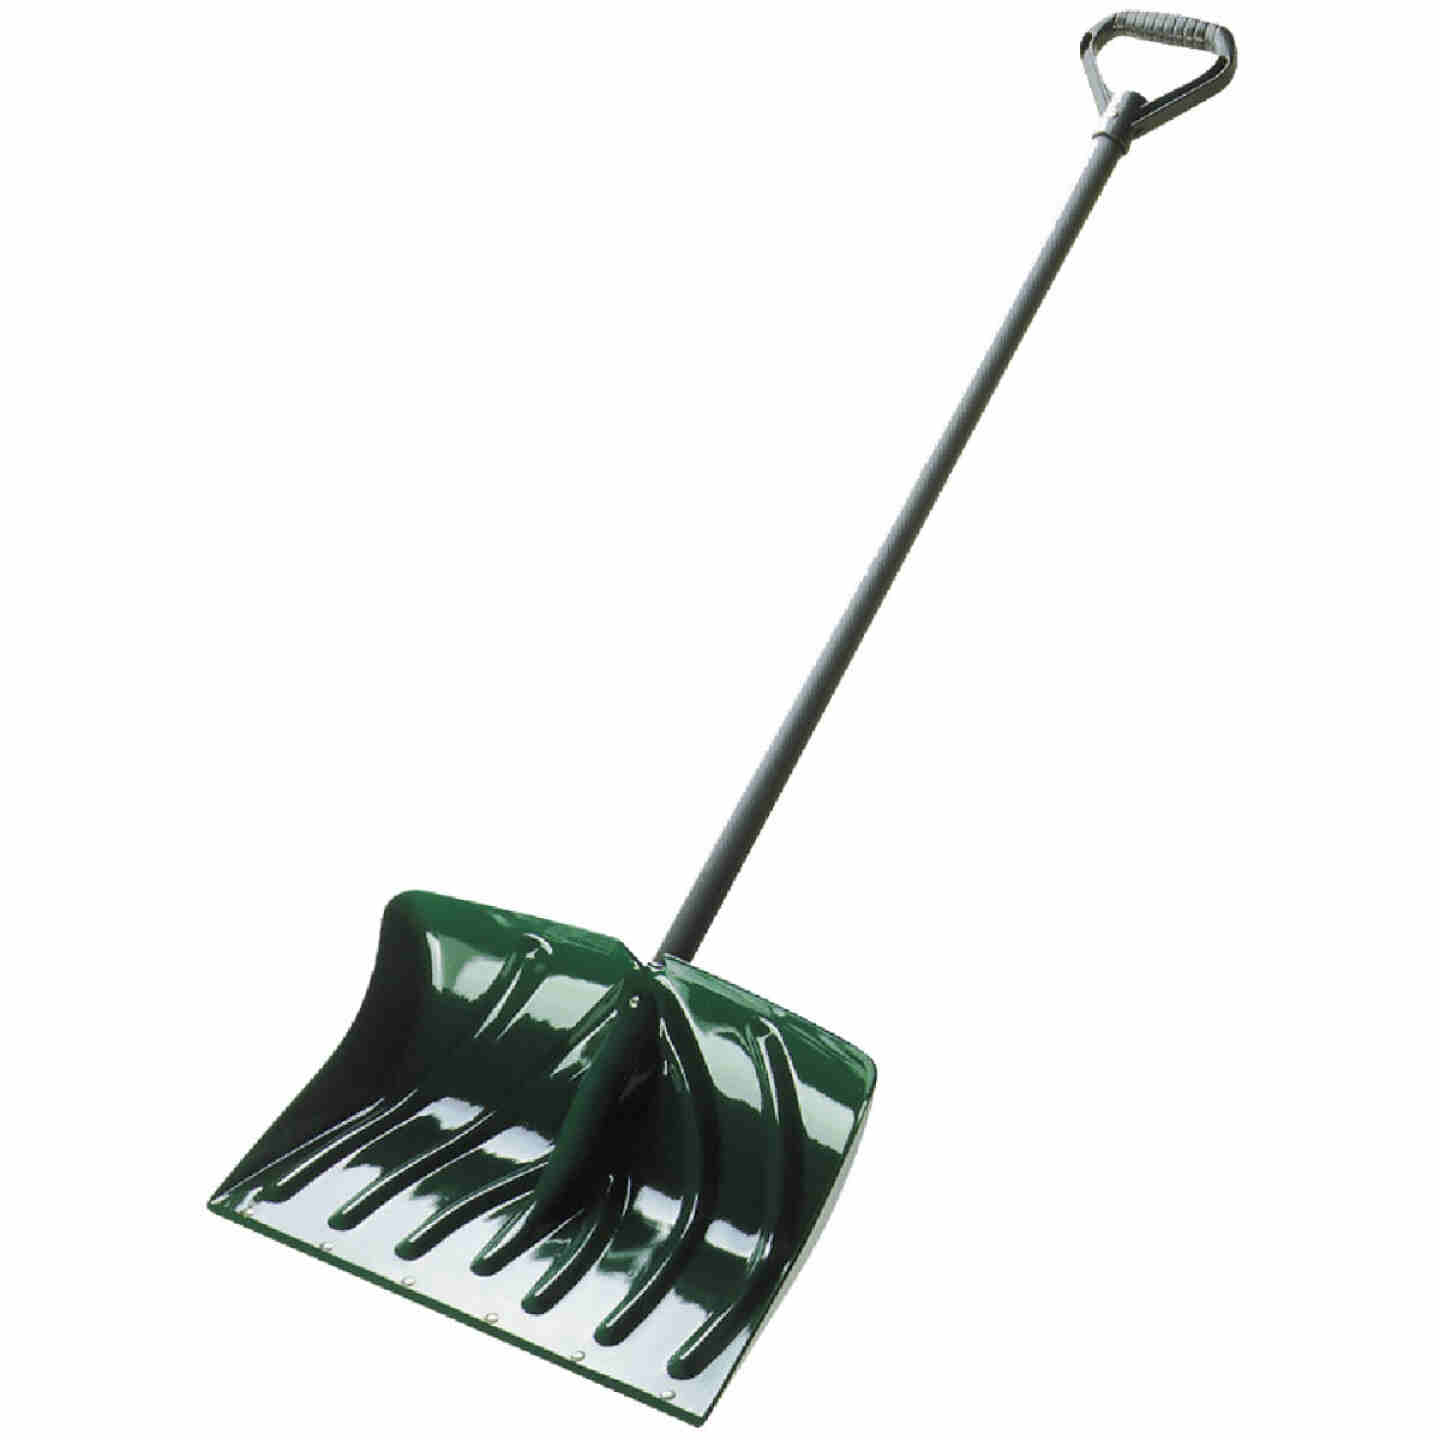 Suncast 18 In. Poly Snow Shovel & Pusher with 39 In. Steel Handle Image 1